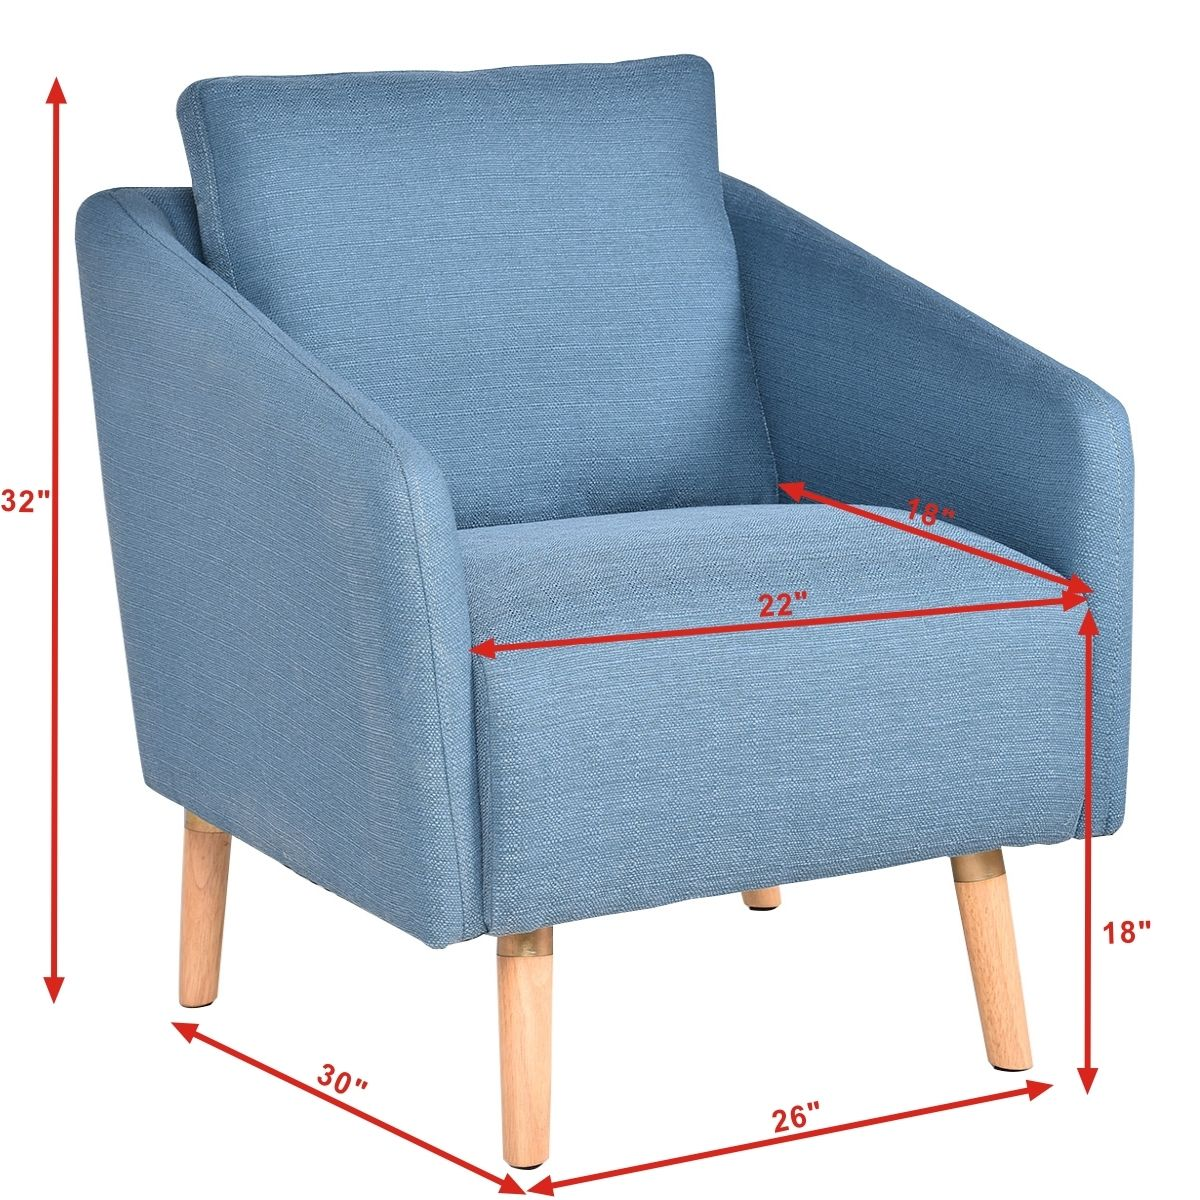 Giantex living room accent leisure chair modern fabric upholstered arm chair single sofa chairs home furniture hw54386